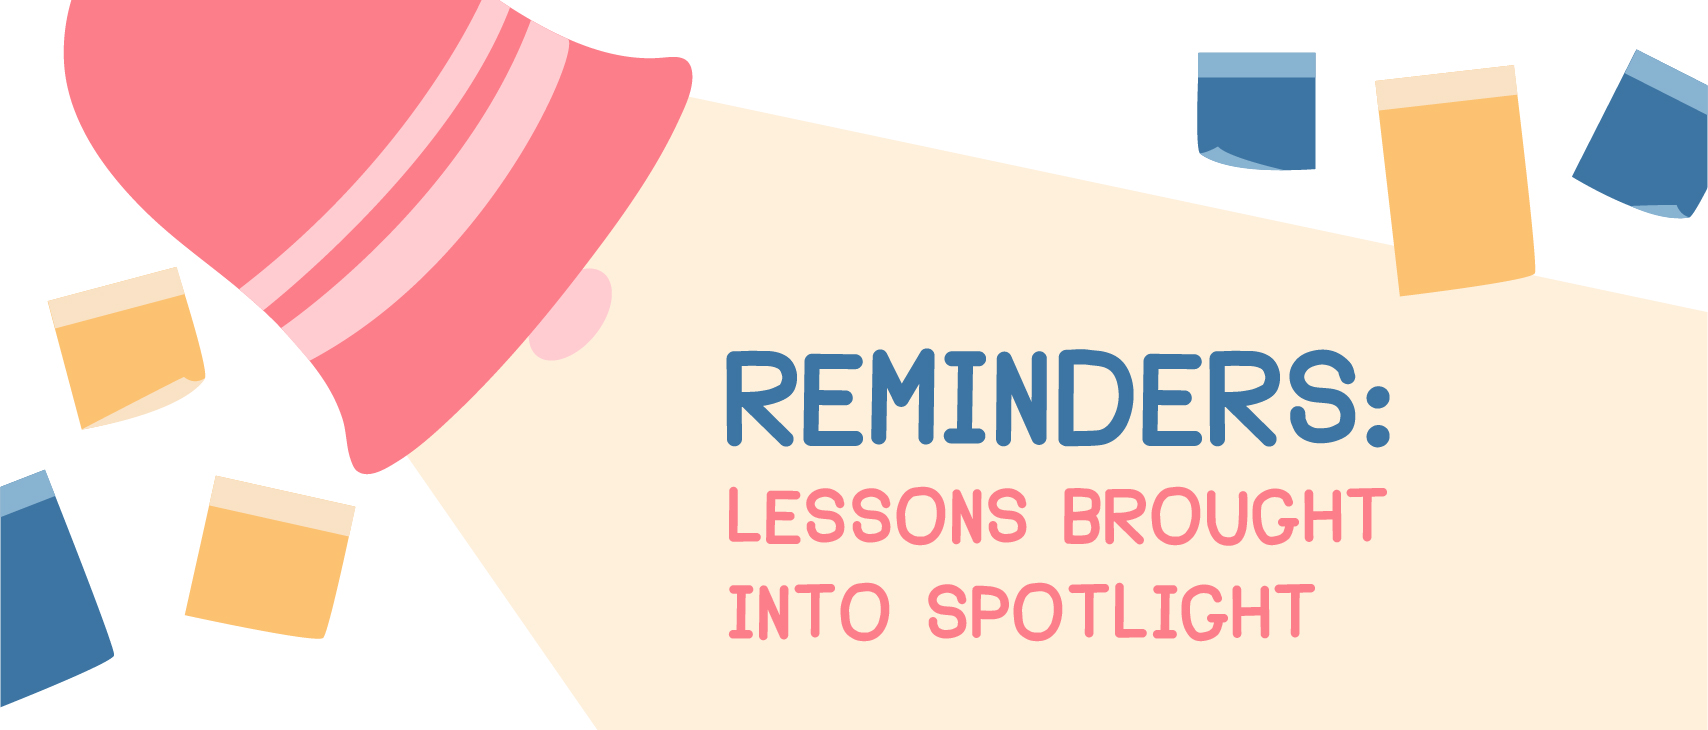 Reminders: Lessons brought into spotlight